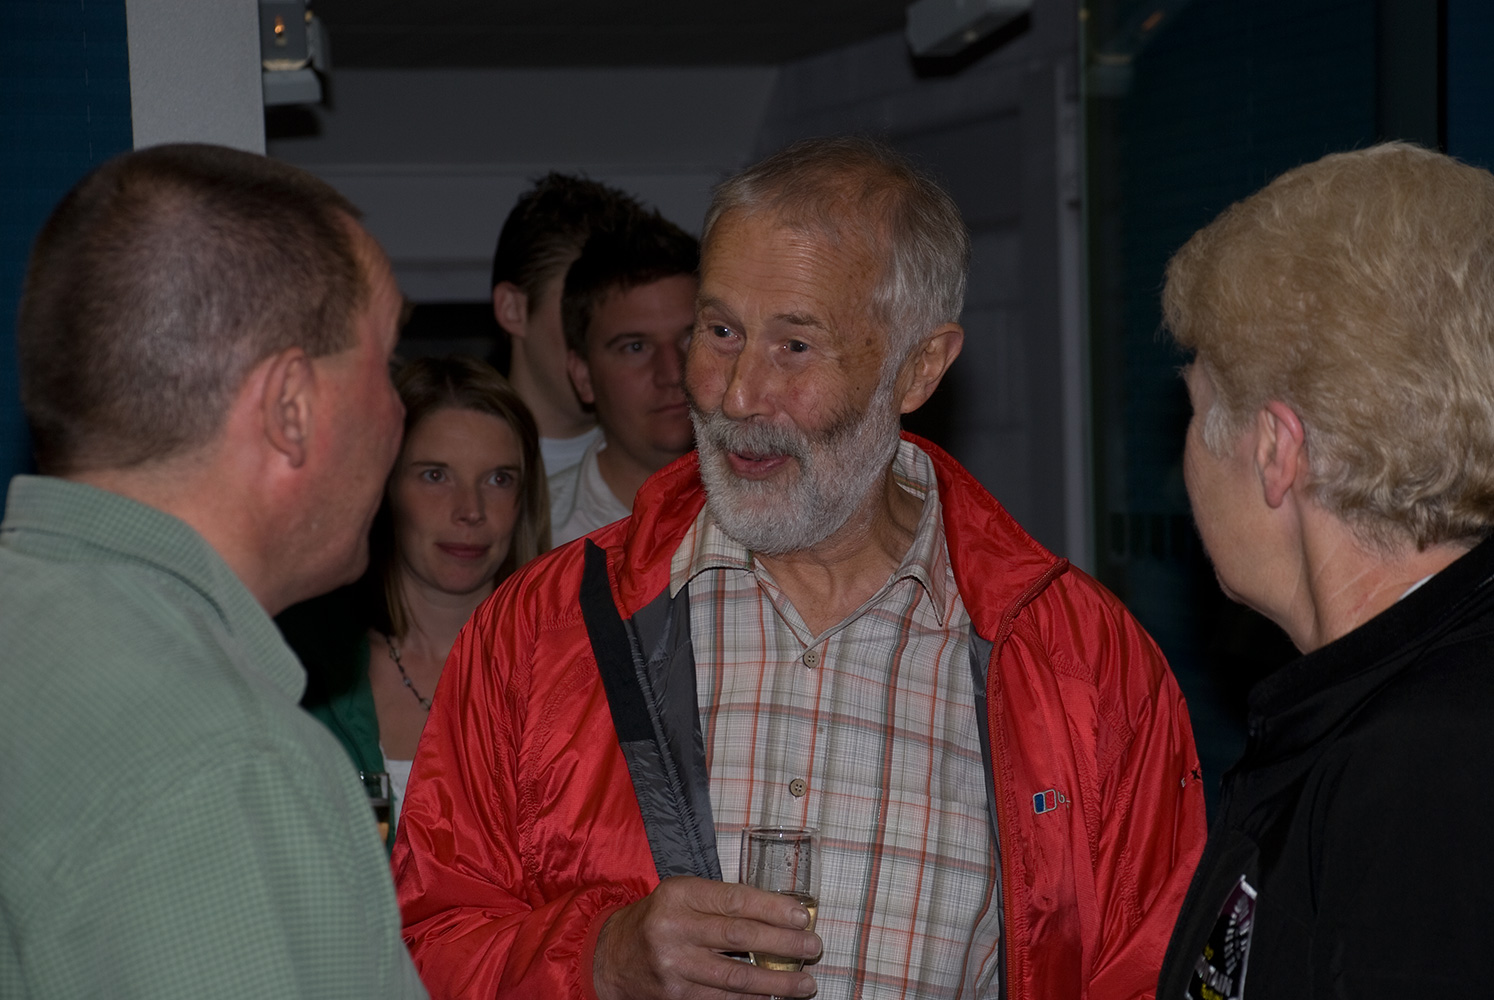 Chris Bonington is arguably the face of British mountaineering. At the Keswick Mountain Festival, Cumbria, England, in 2008